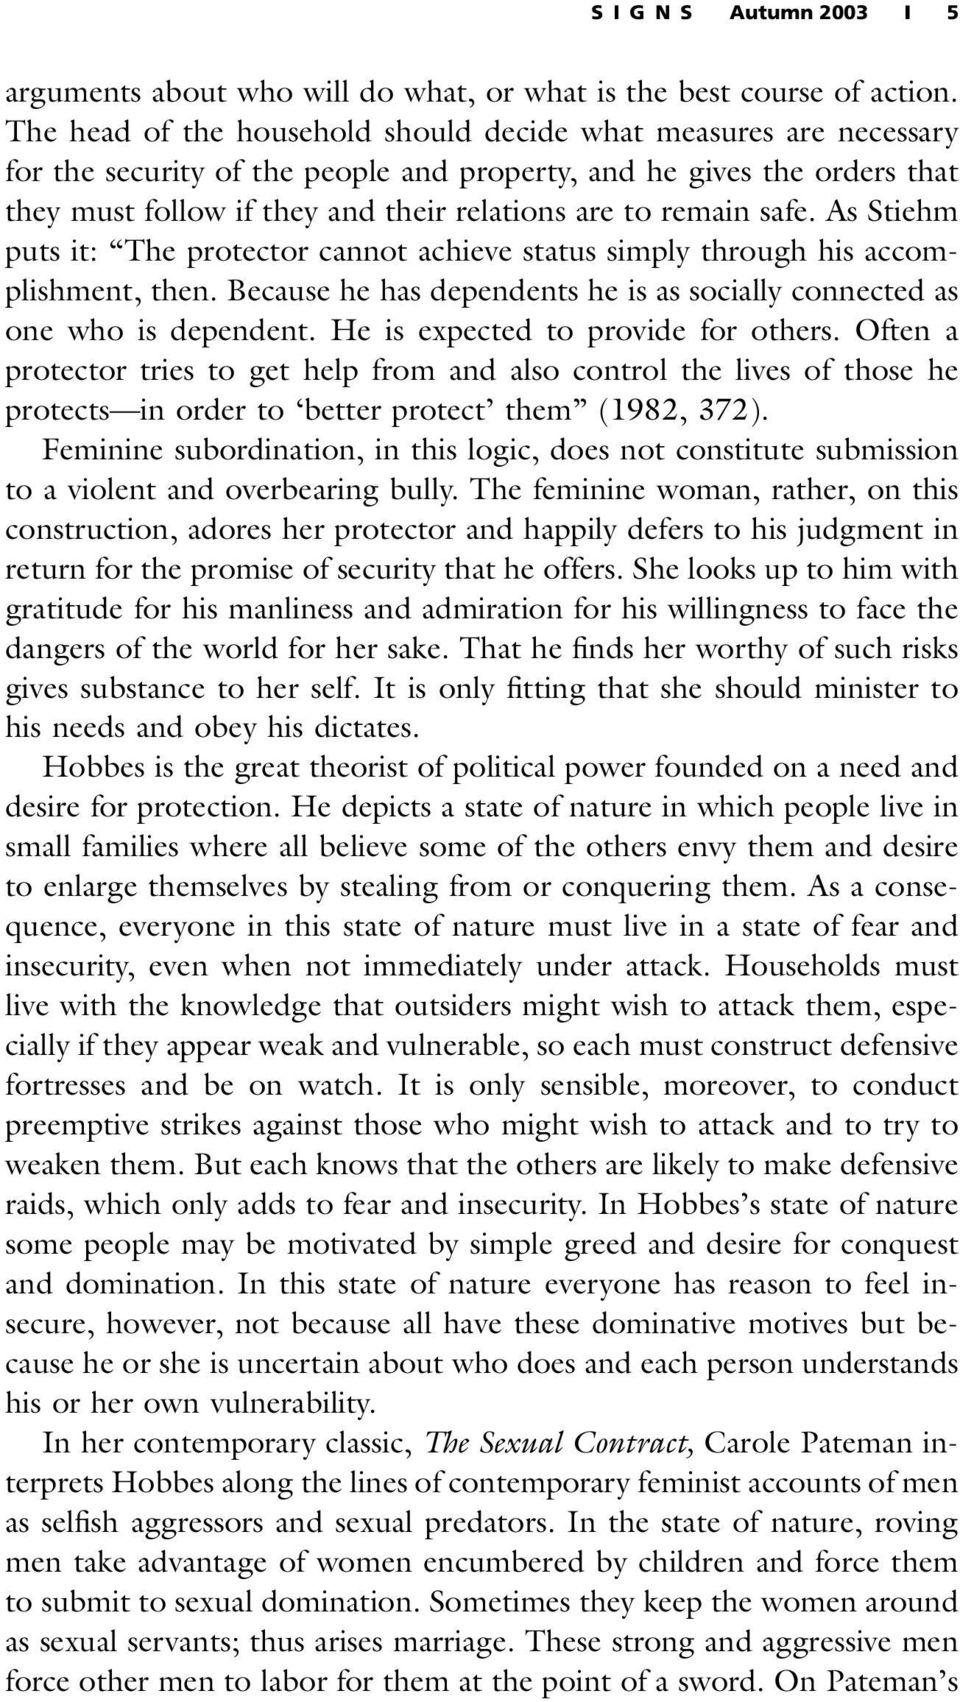 remain safe. As Stiehm puts it: The protector cannot achieve status simply through his accomplishment, then. Because he has dependents he is as socially connected as one who is dependent.